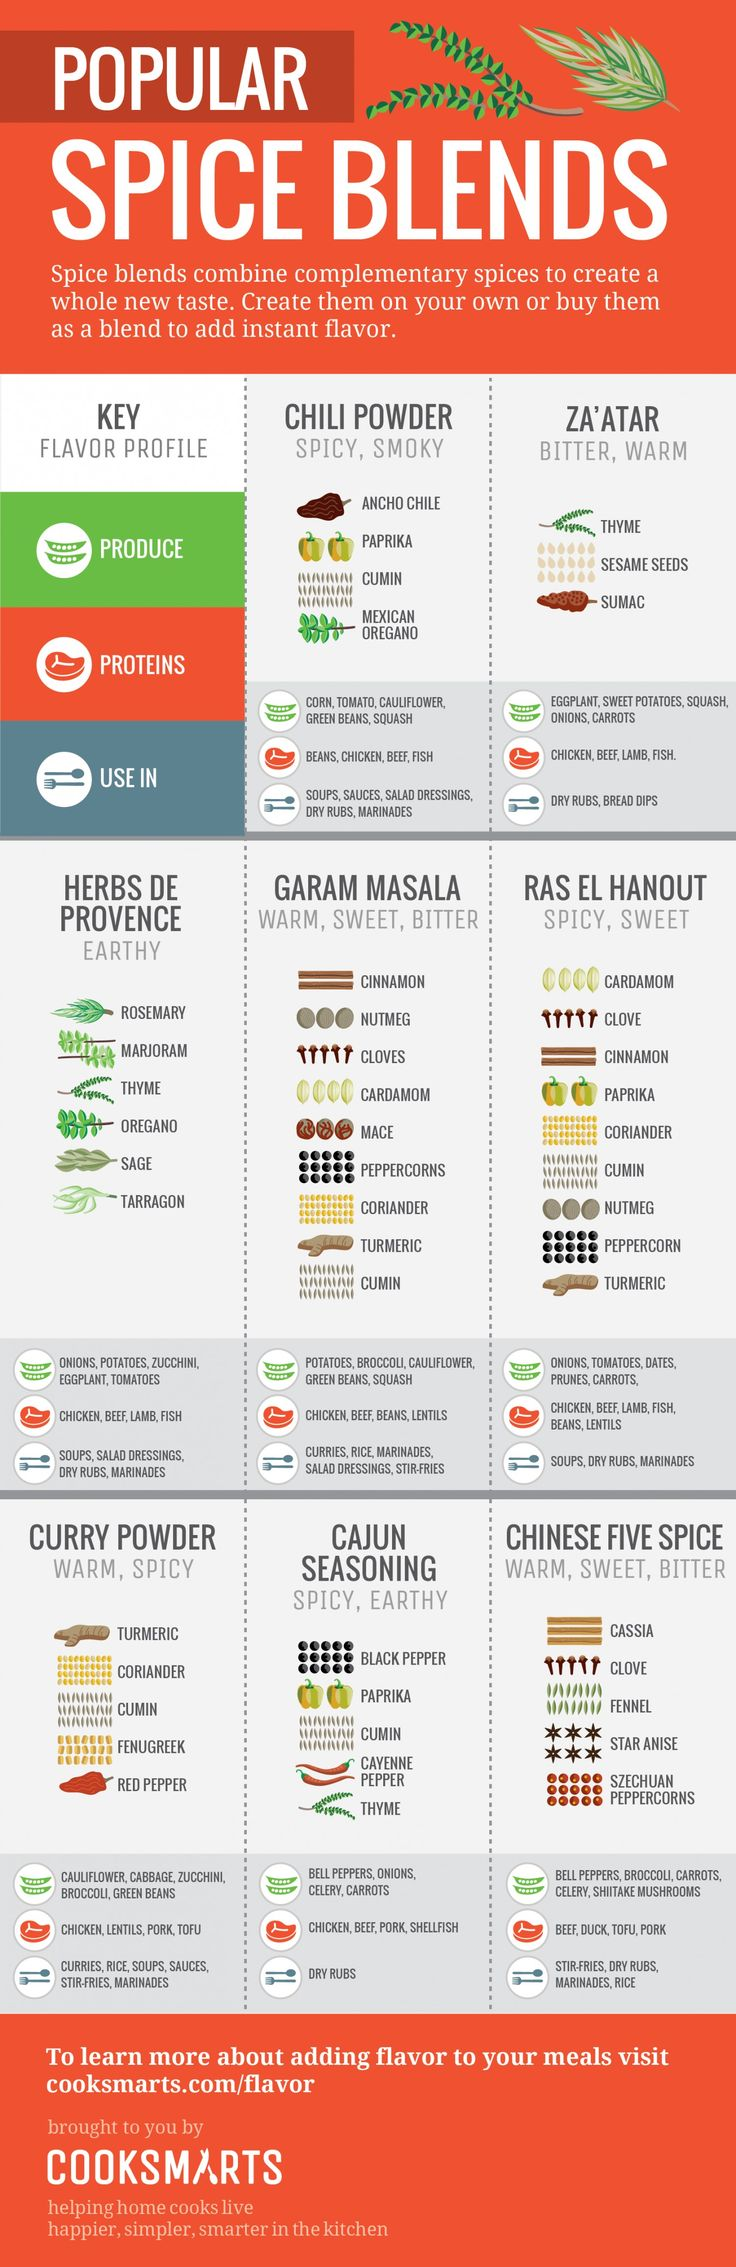 Popular Spice Blends #Infographic by Cook Smarts via @therealvisually